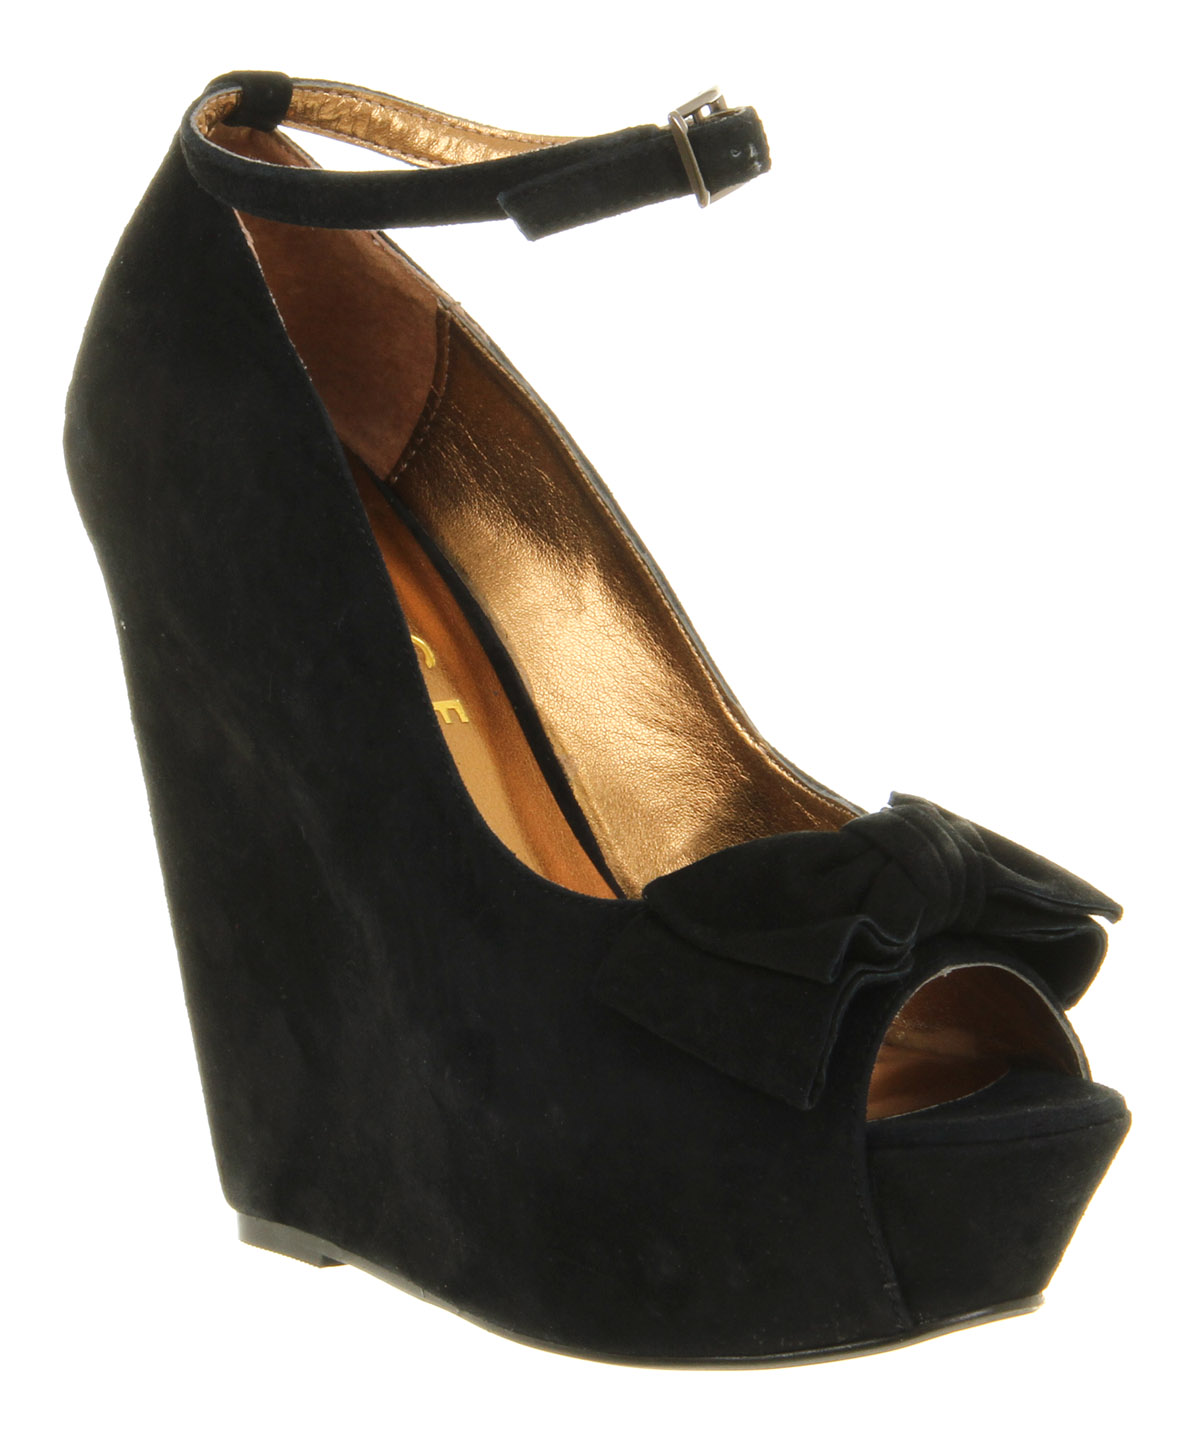 Womens-Office-Wonderland-Black-Suede-High-Heel-Wedge-Shoes